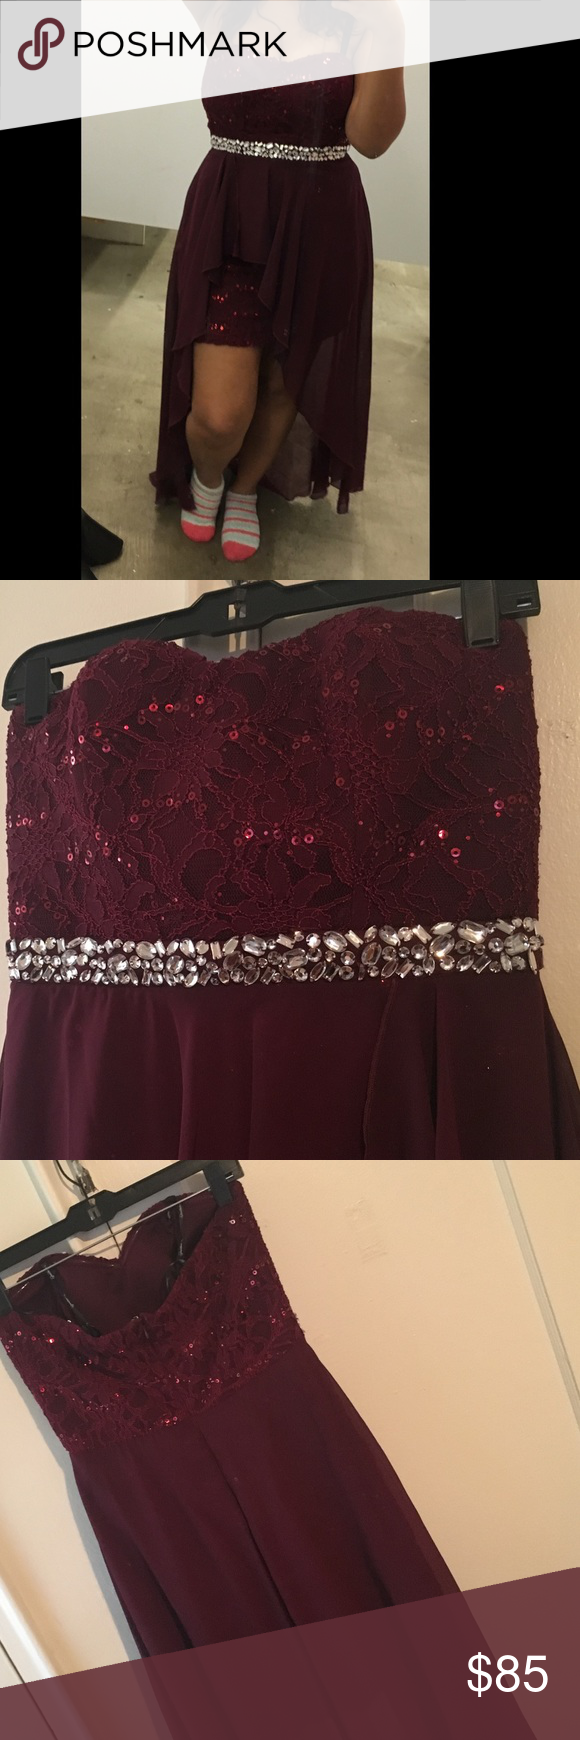 Evening dress dark red evening dress with silver ort in the